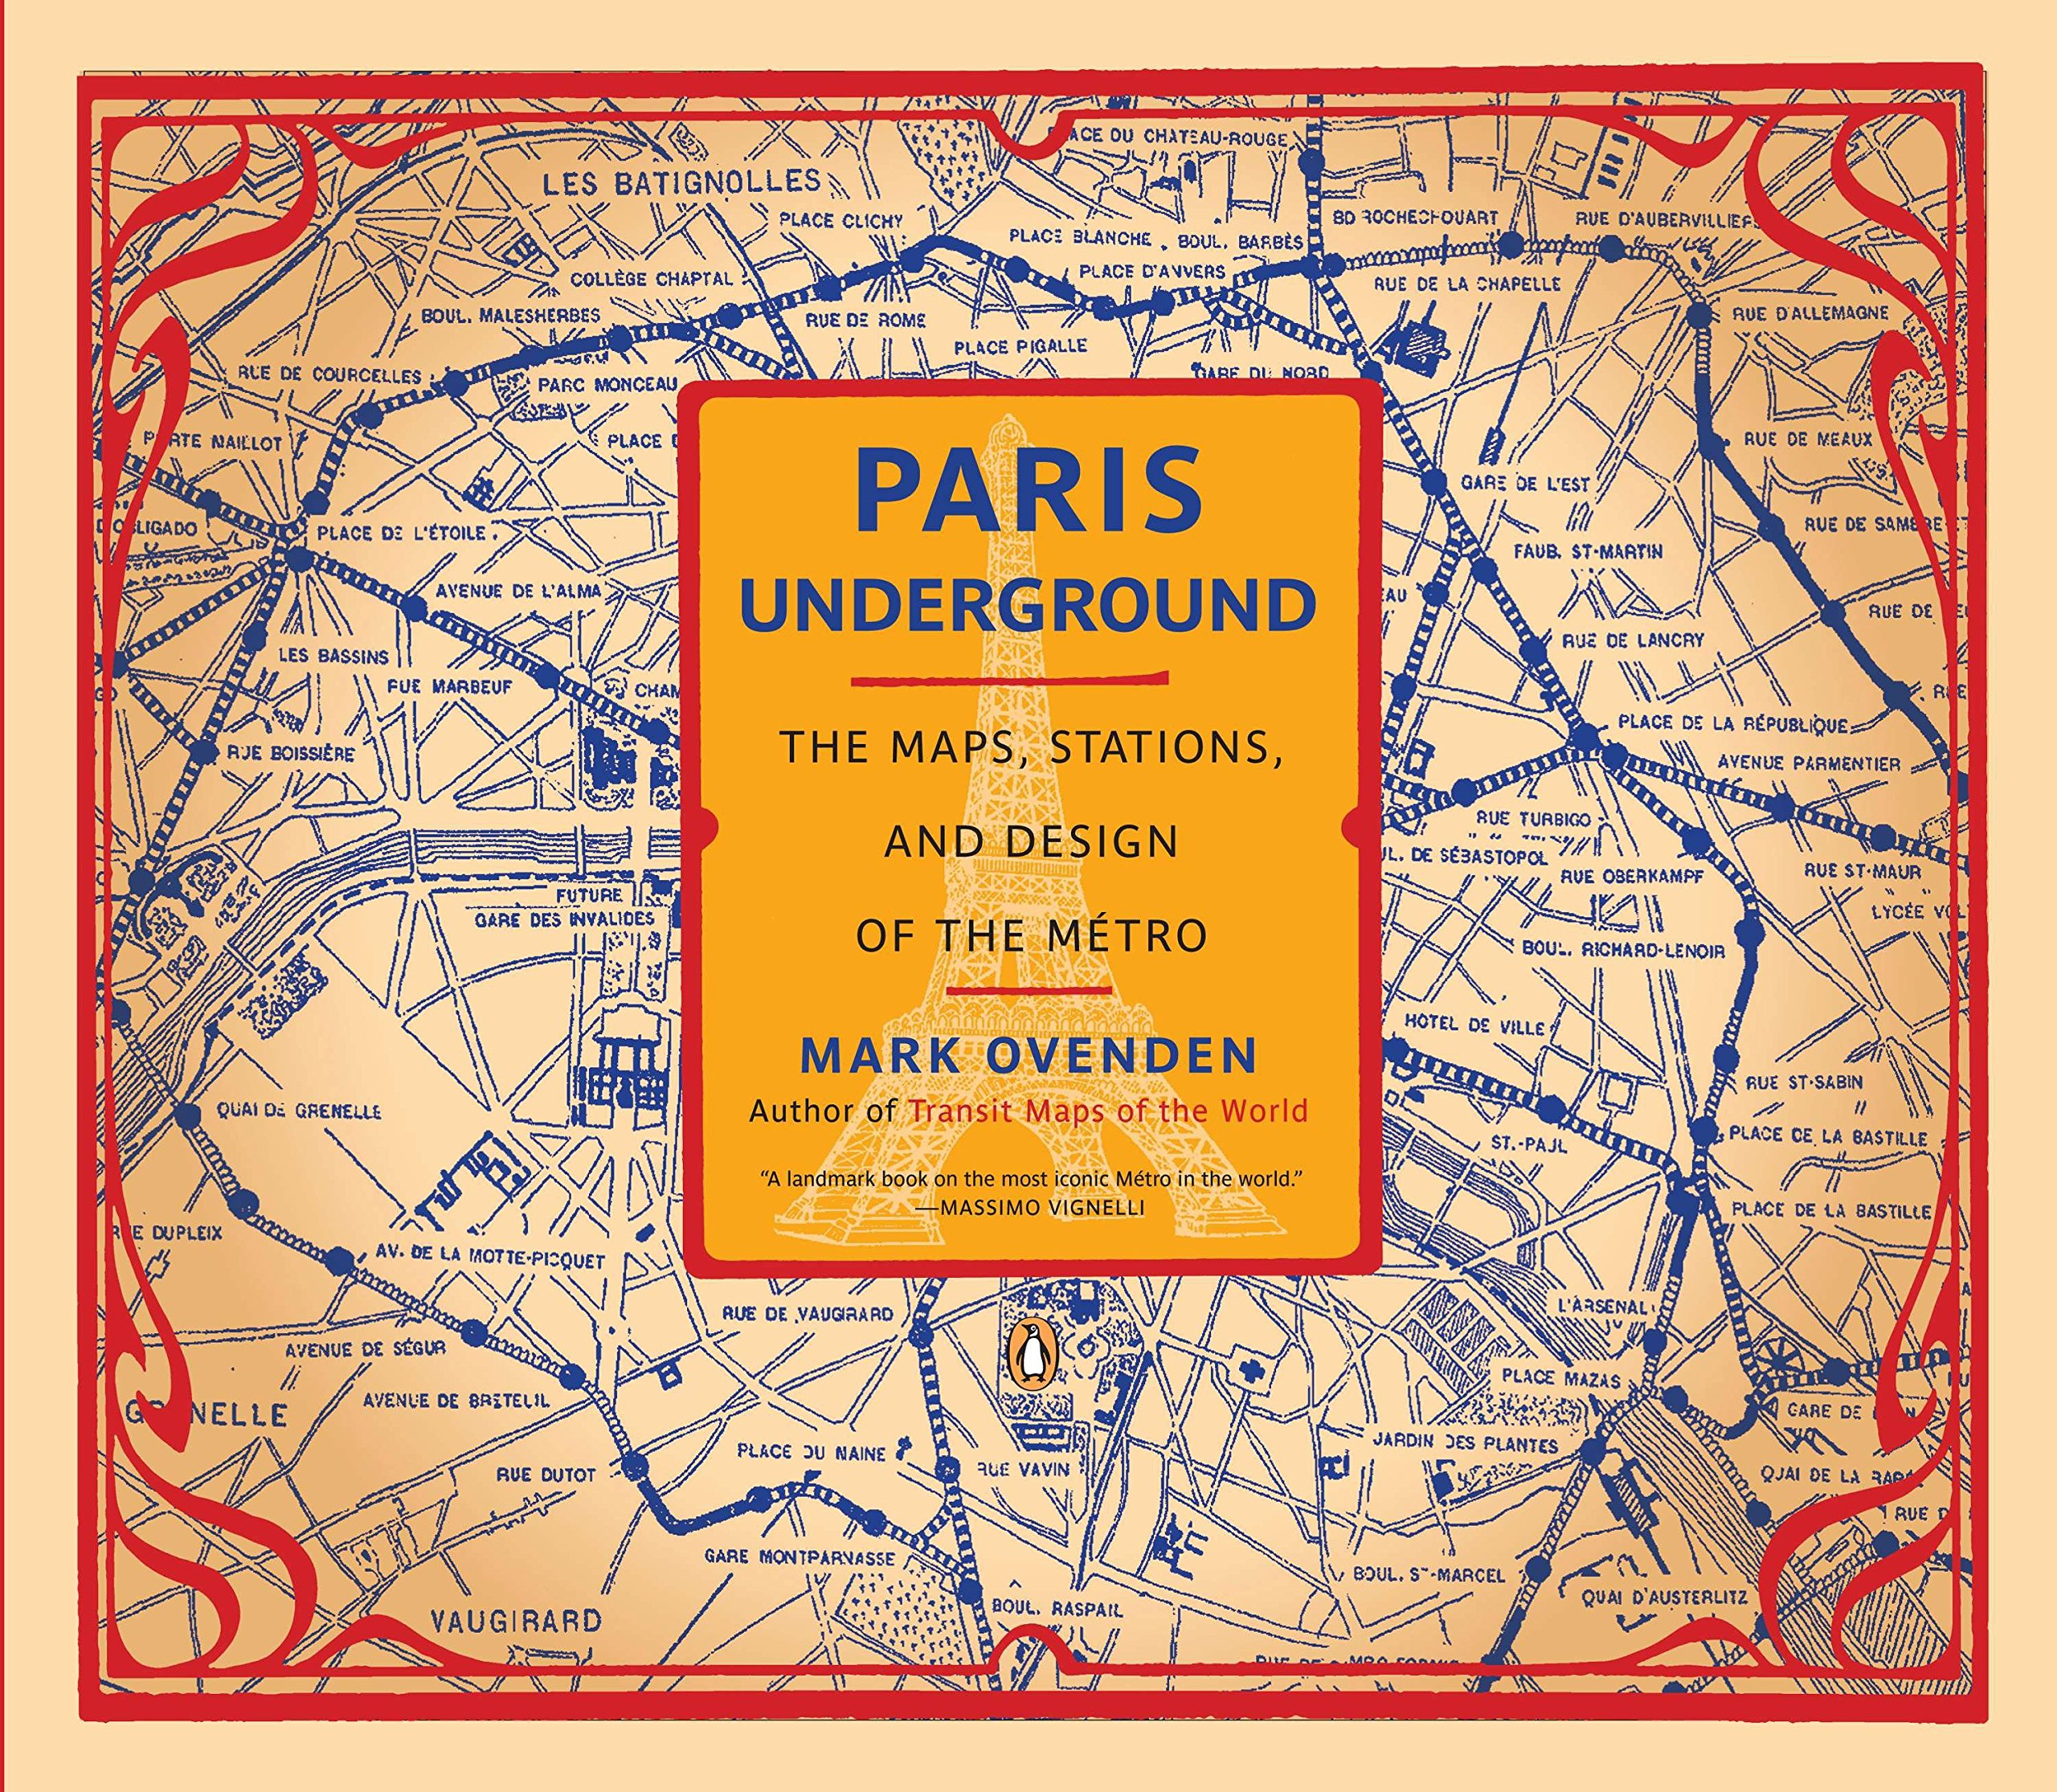 Subway Map Paris English.Paris Underground The Maps Stations And Design Of The Metro Mark